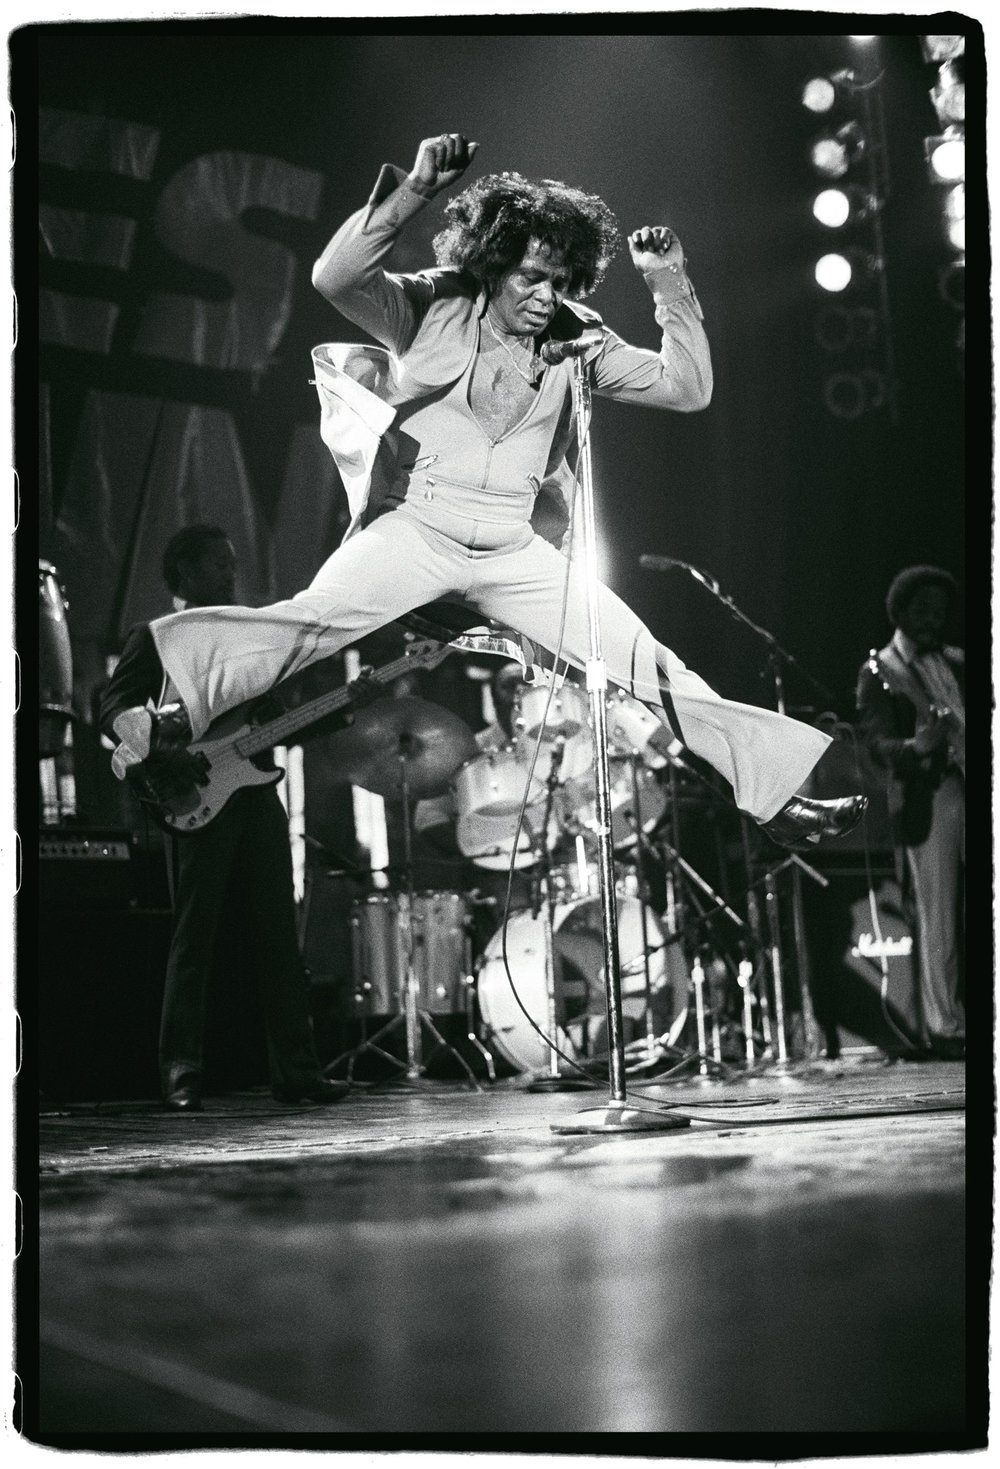 James Brown, Hammersmith Odeon, London, UK, 23rd May 1985